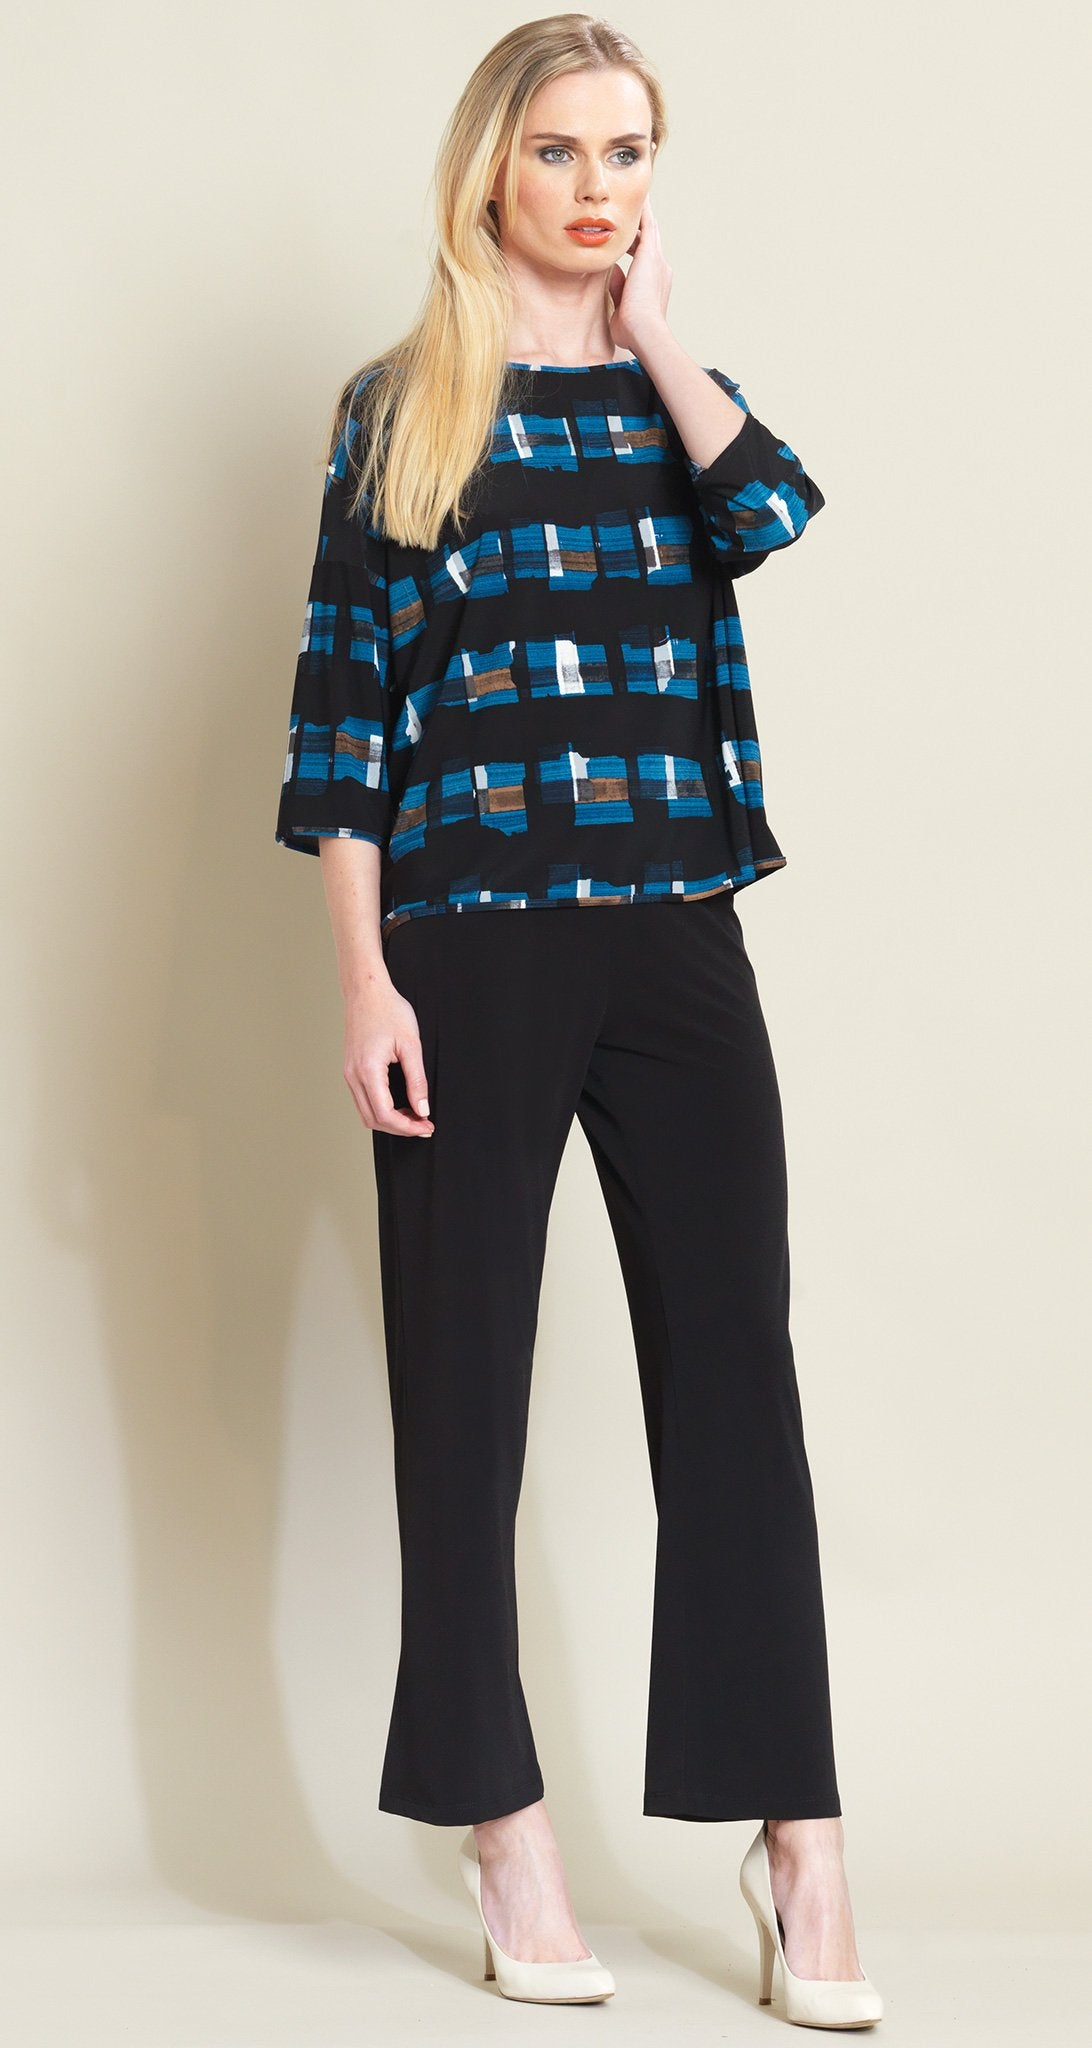 Square Print Loose Cut Top - Blue/Black - Limited Sizes!